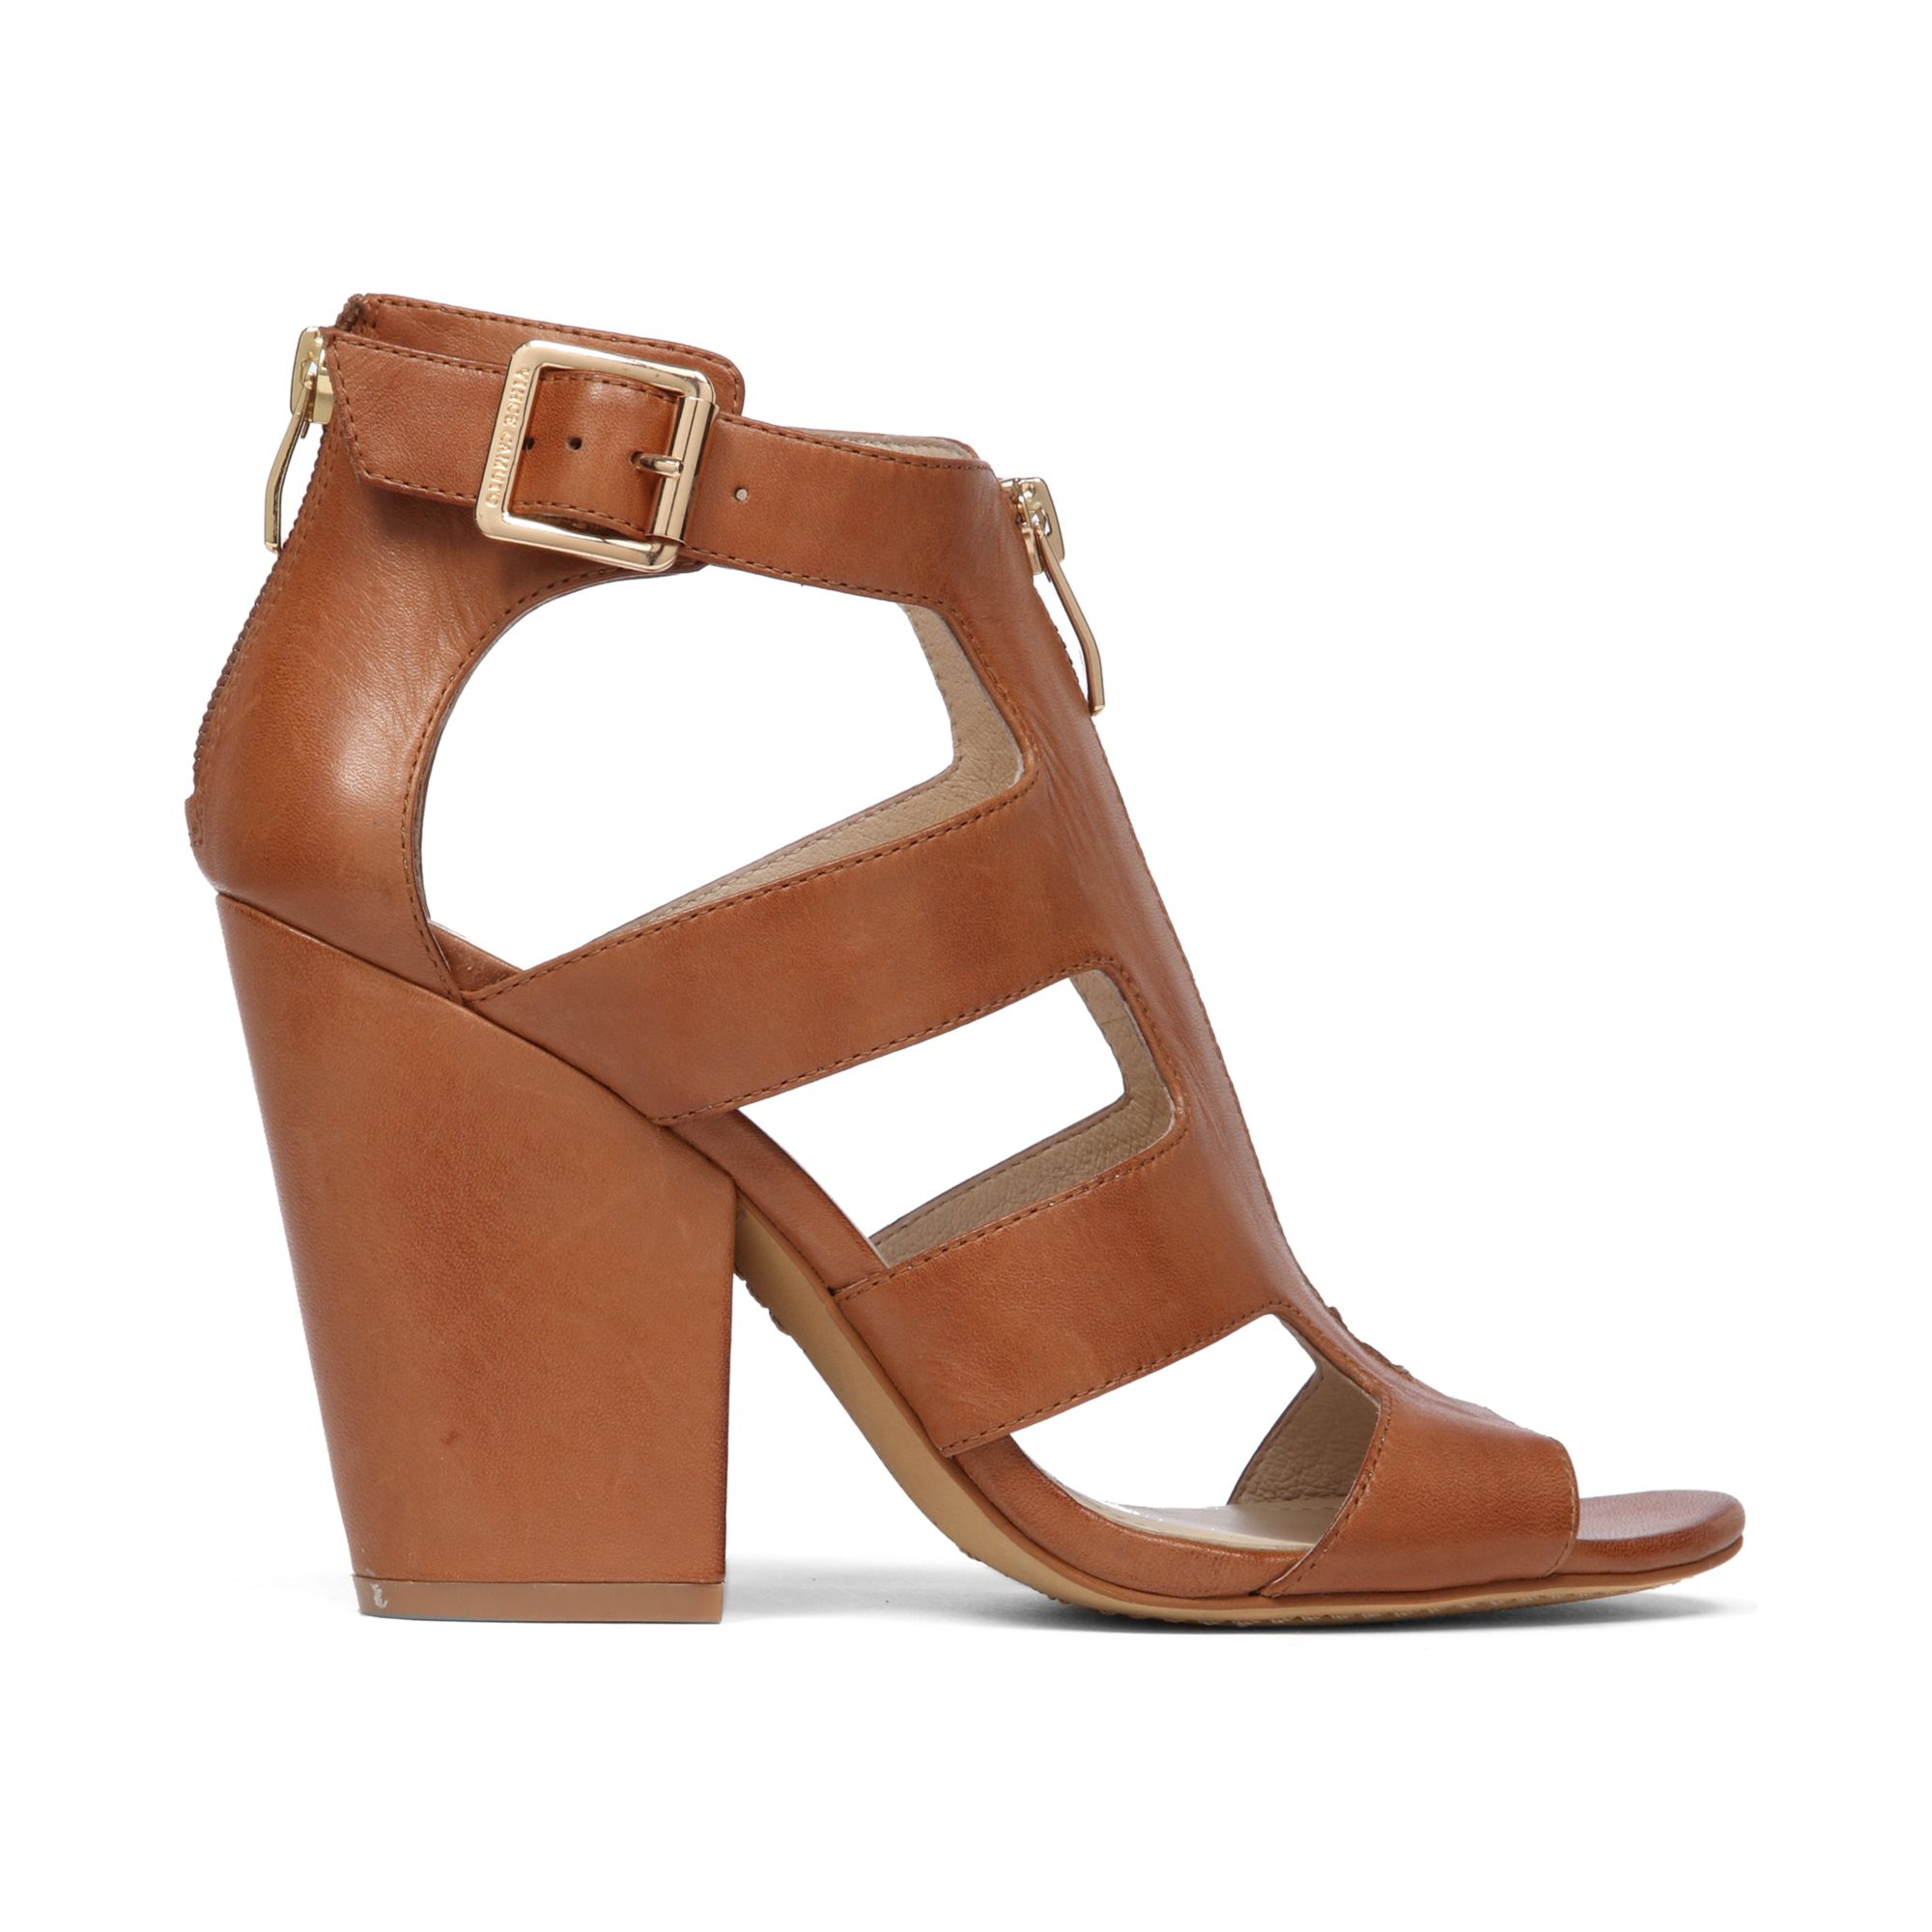 3a0fcbb182 Vince Camuto Marleau Block Heel Sandals in Brown - Lyst